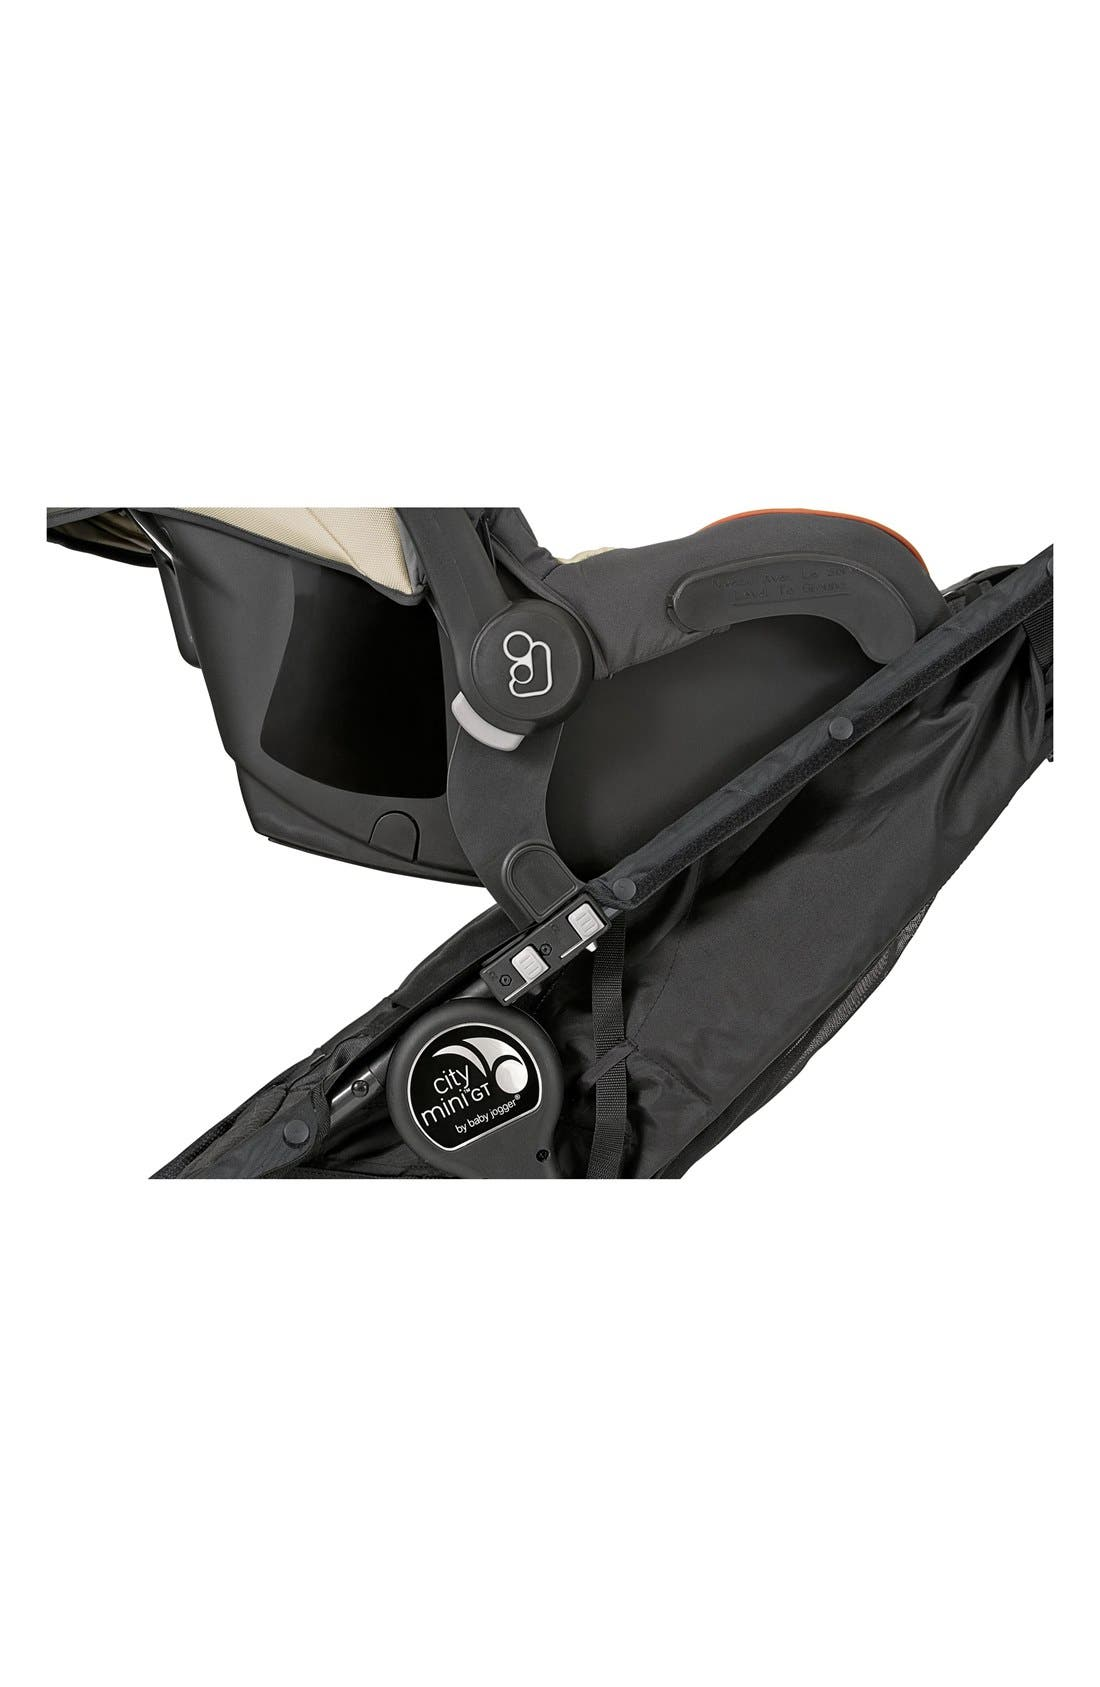 City Mini<sup>®</sup> Double/City Mini<sup>®</sup> GT Double Stroller to Cybex & Maxi-Cosi<sup>®</sup> Car Seat Adapter,                             Main thumbnail 1, color,                             BLACK